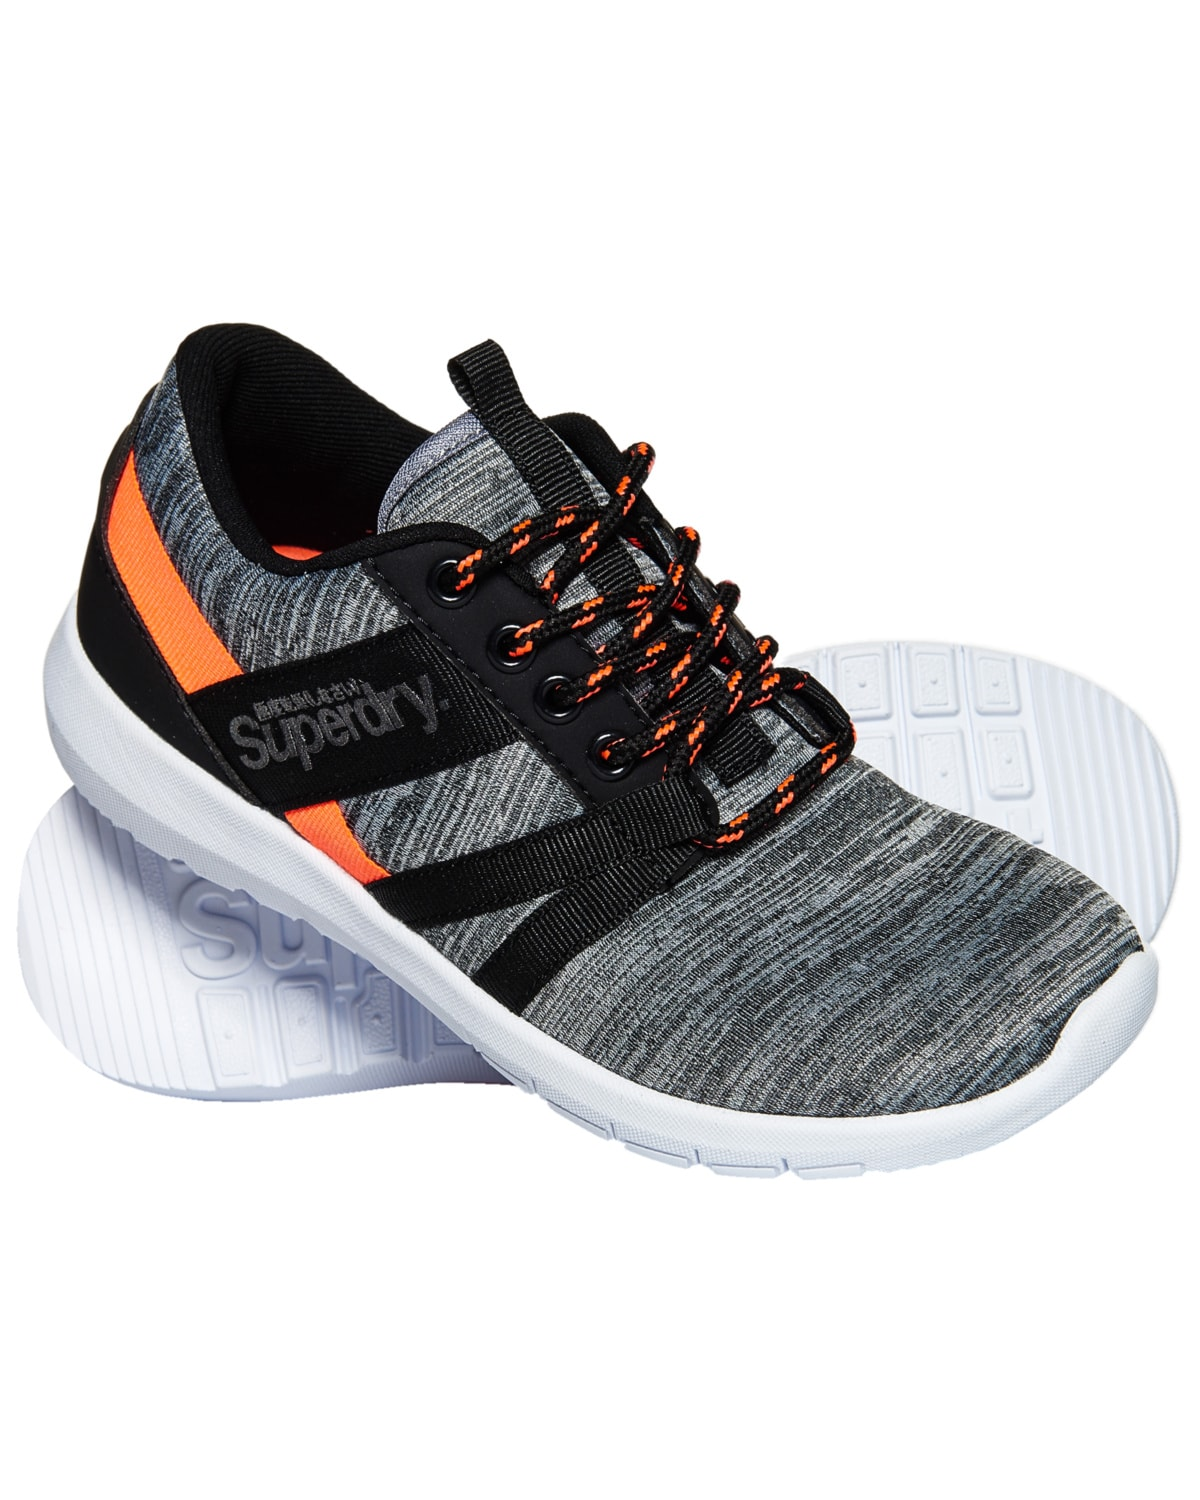 Superdry Scuba Stadium Train - Grey Slub/Coral